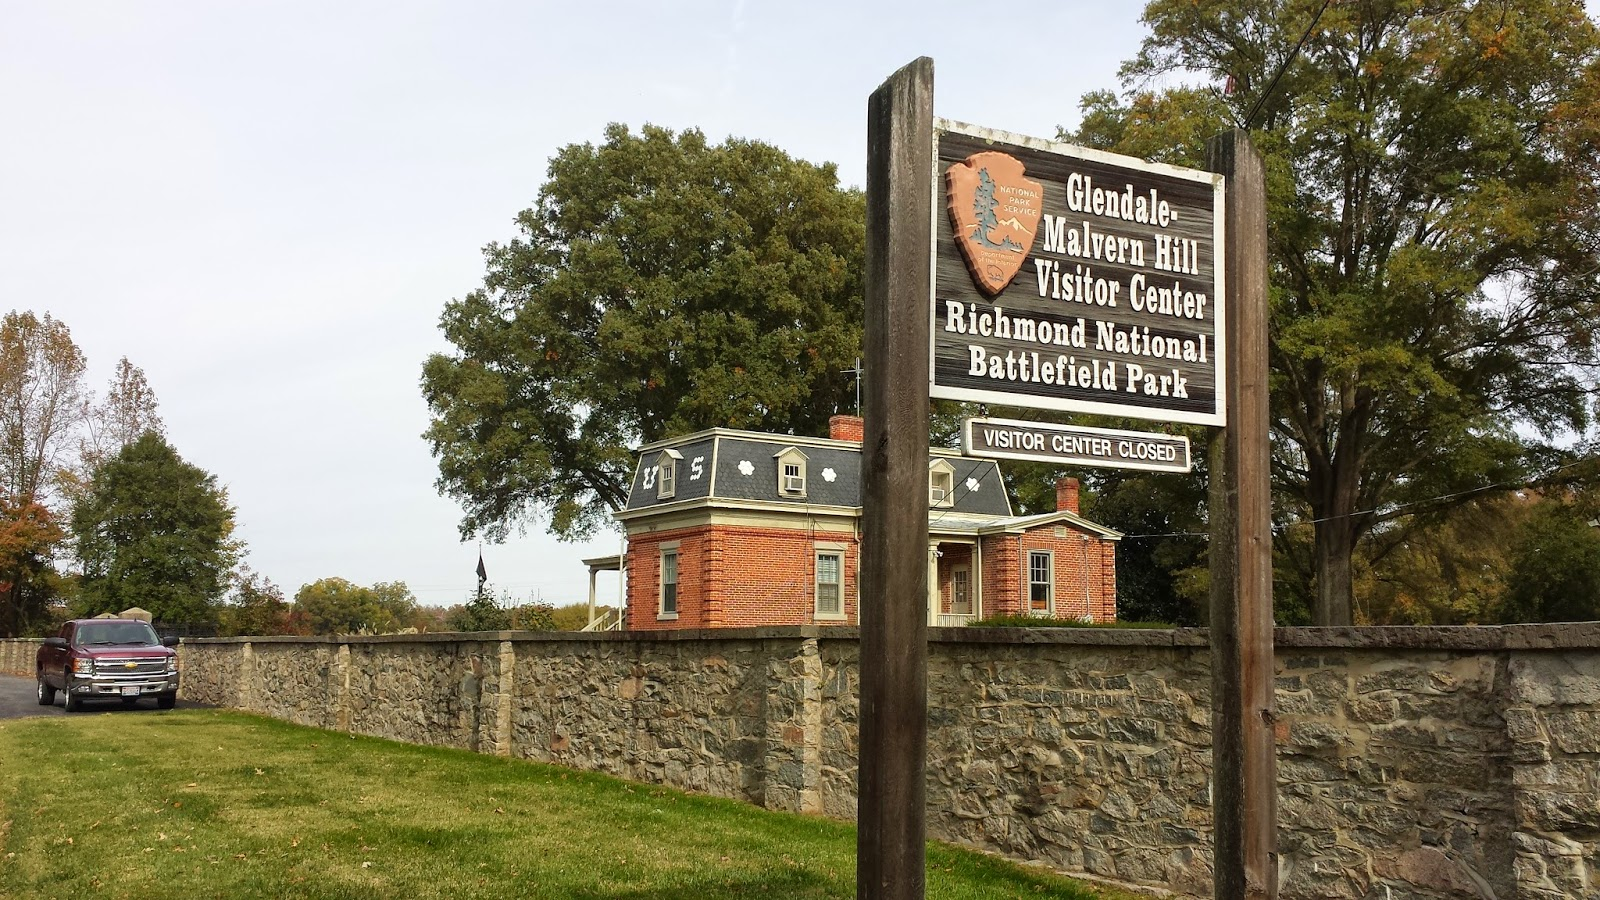 The Glendale/Malvern Hill Battlefields Visitor Center. The Center is in the background